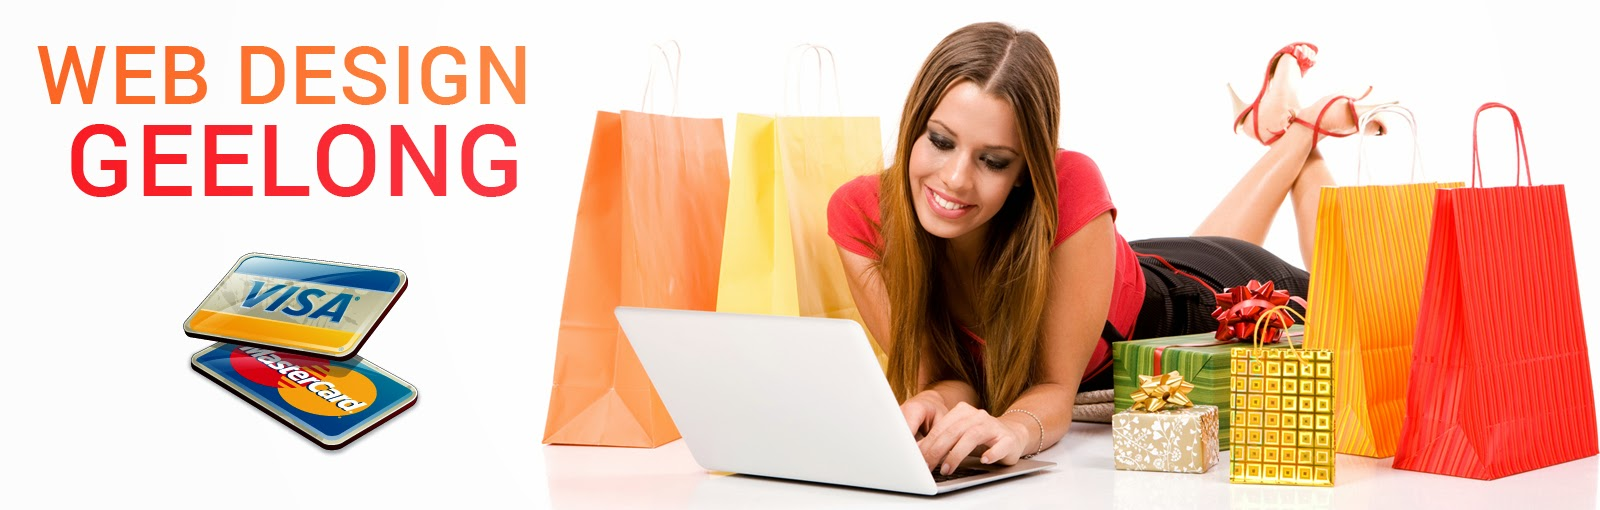 E- commerce Web Design Geelong